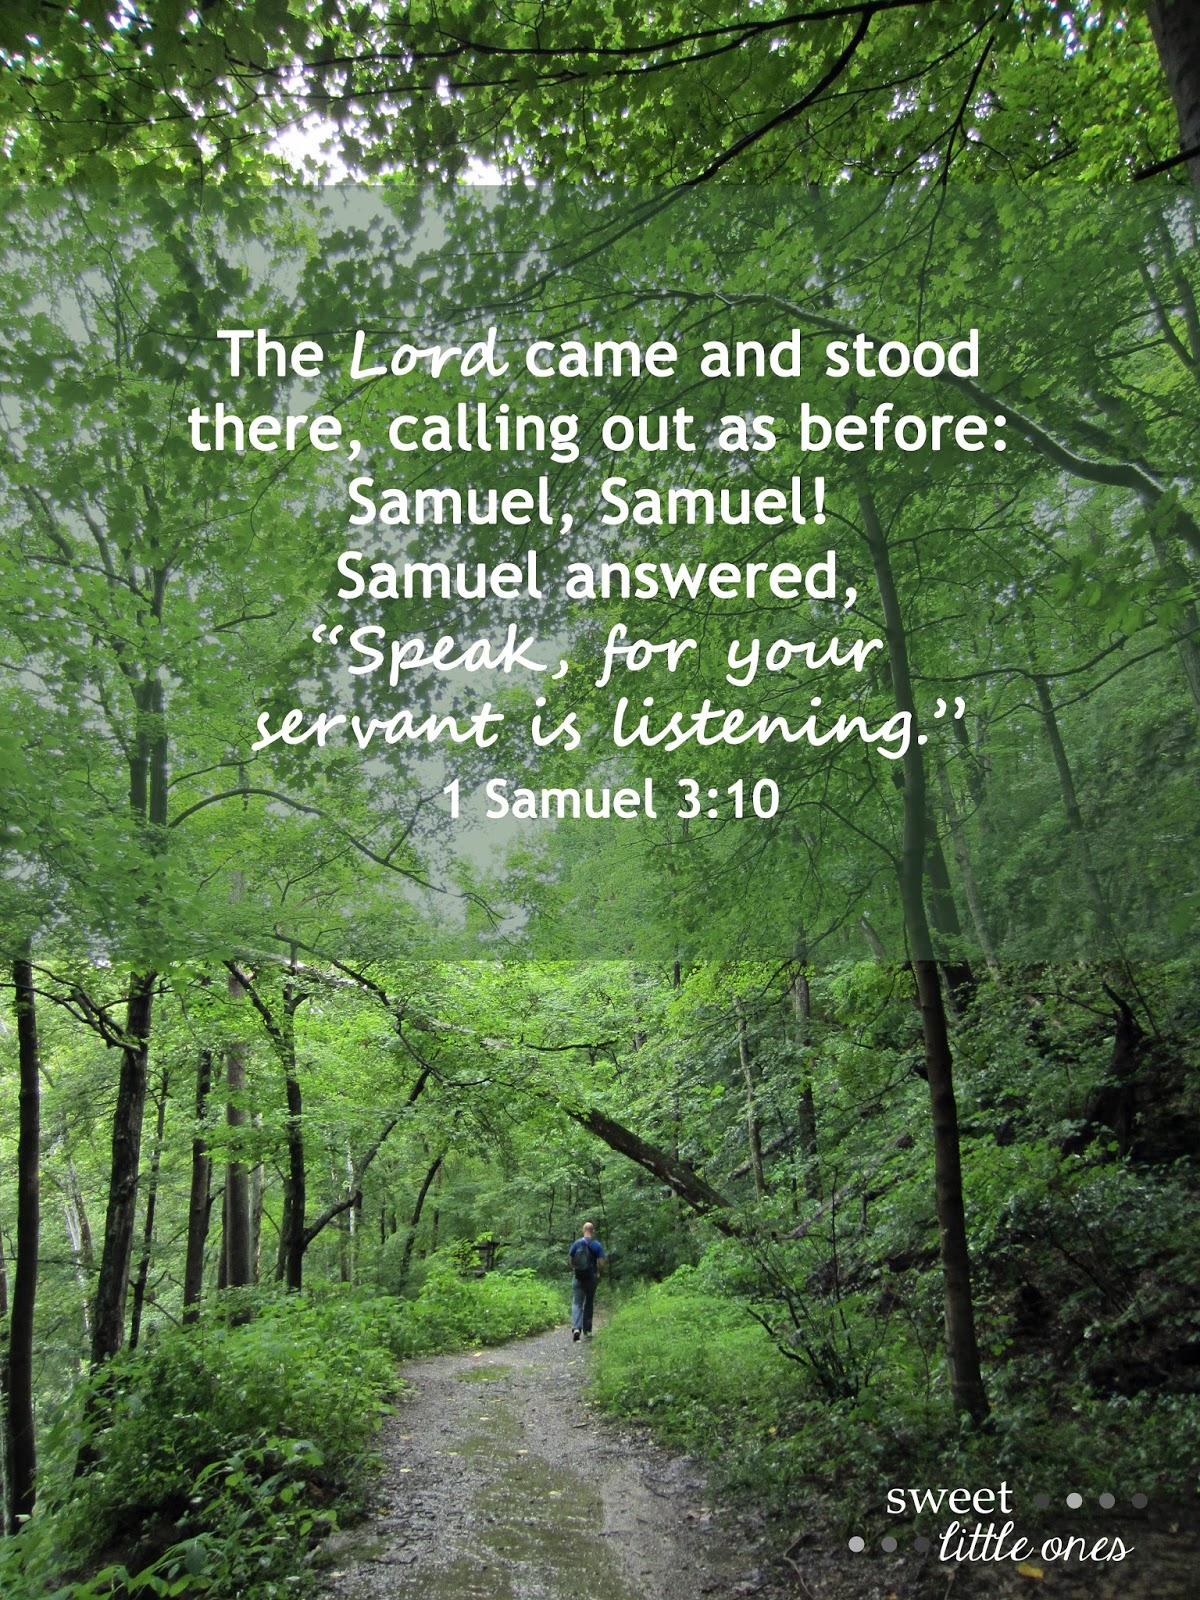 """Thoughts on Prayer - Prayer is an action of talking and listening to God and there are 4 types of prayer: Adoration, Contrition, Thanksgiving, and Supplication.  The Lord came and stood there, calling out as before: Samuel, Samuel!  Samuel answered, """"Speak, for your servant is listening."""" 1 Samuel 3:10 -  www.sweetlittleonesblog.com"""